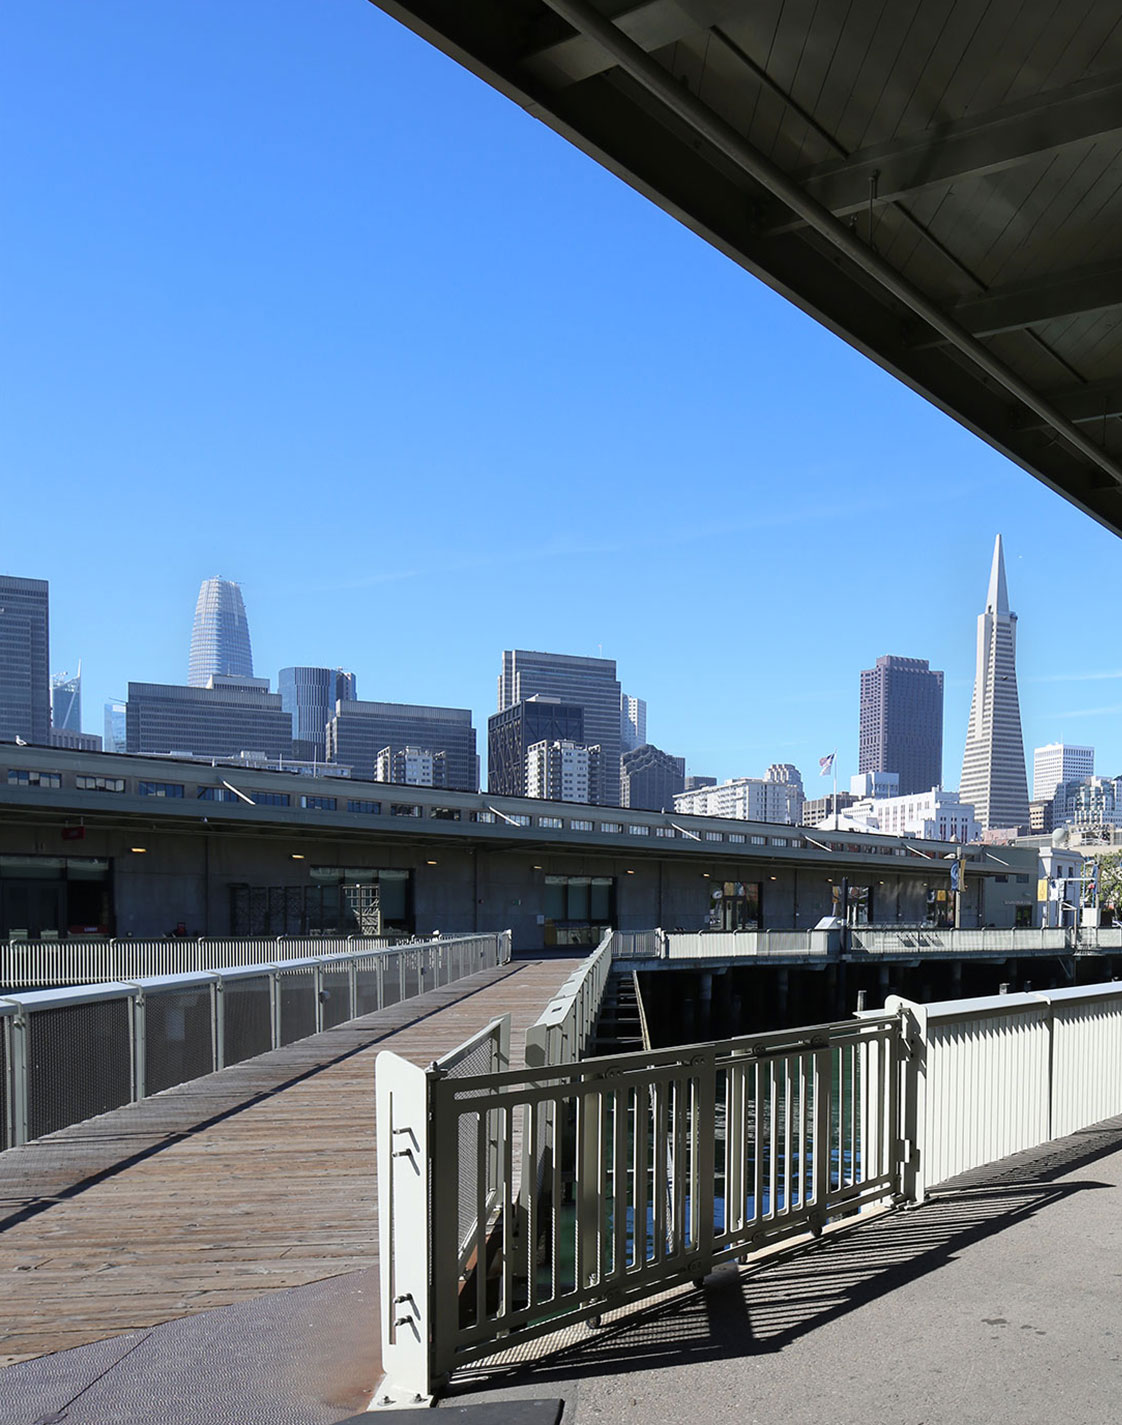 San Francisco Piers 15 17 Exploratorium Egress Path and Skyline Transamerica Pyramid Building